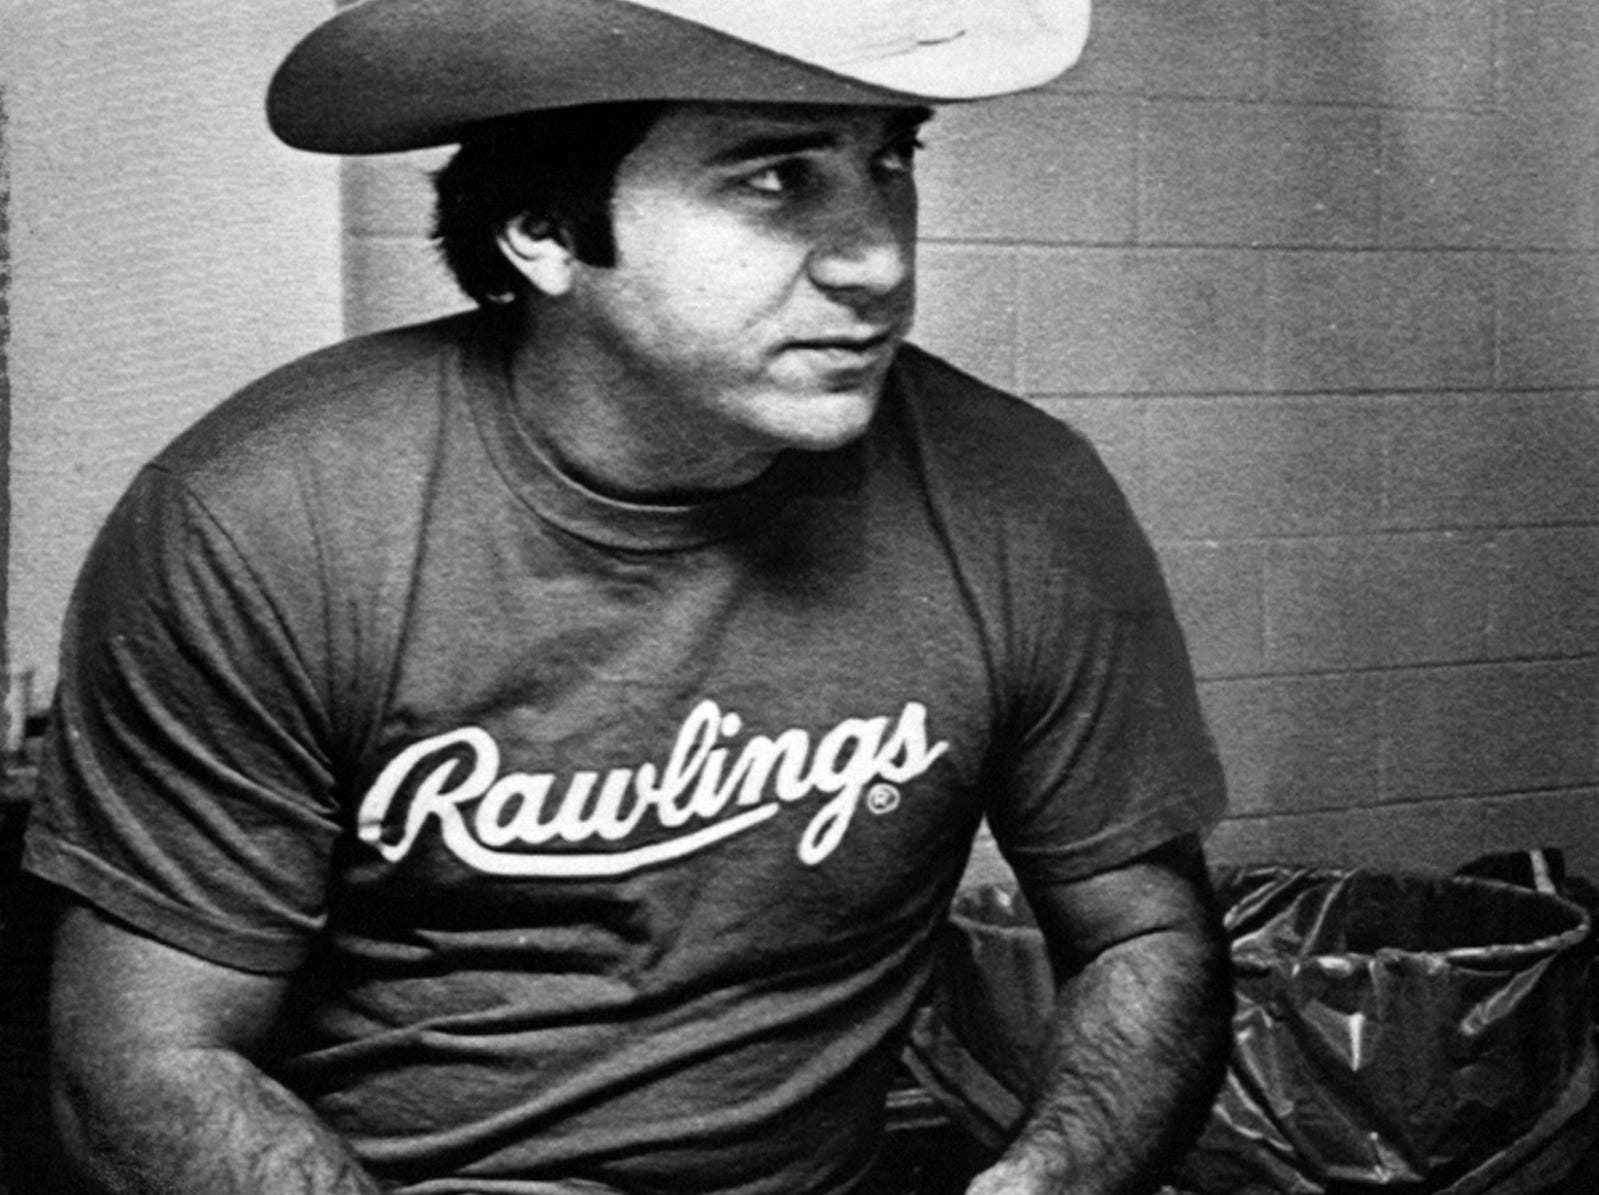 OCTOBER 4, 1979: Catcher Johnny Bench autographs baseballs in lieu of a workout that was cancelled by rain. The baseballs are autographed by each team member and a dozen given to each player to do with as he pleases. The Enquirer/Michael E. Keating scanned August 8, 2013